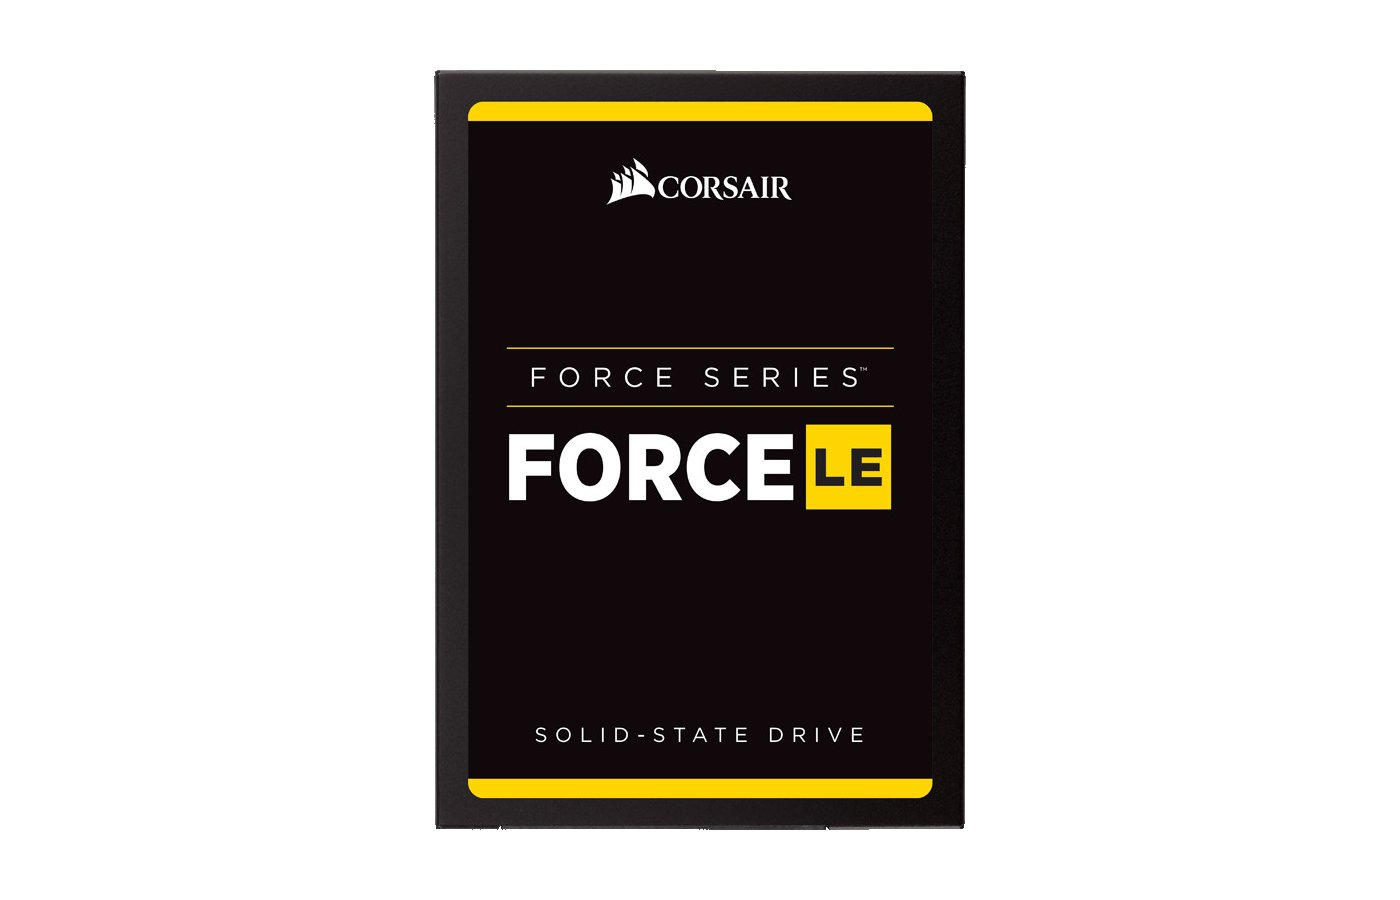 SSD жесткий диск Corsair SATA-III 120Gb CSSD-F120GBLEB Force LE 2.5